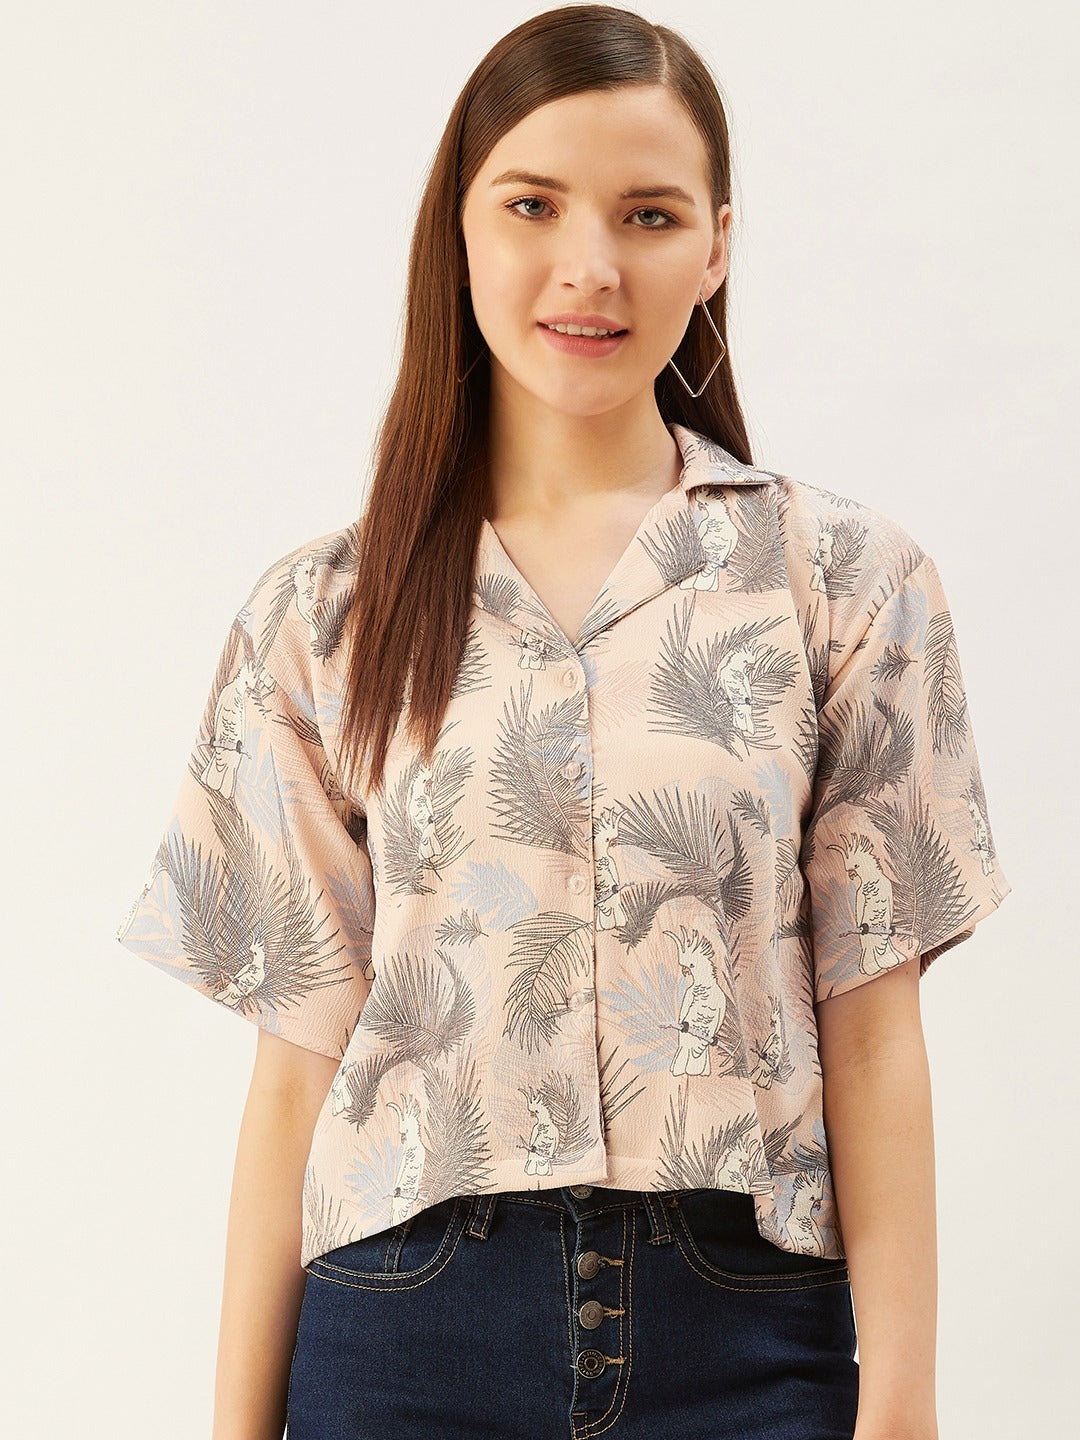 Beige Tropical Shirt